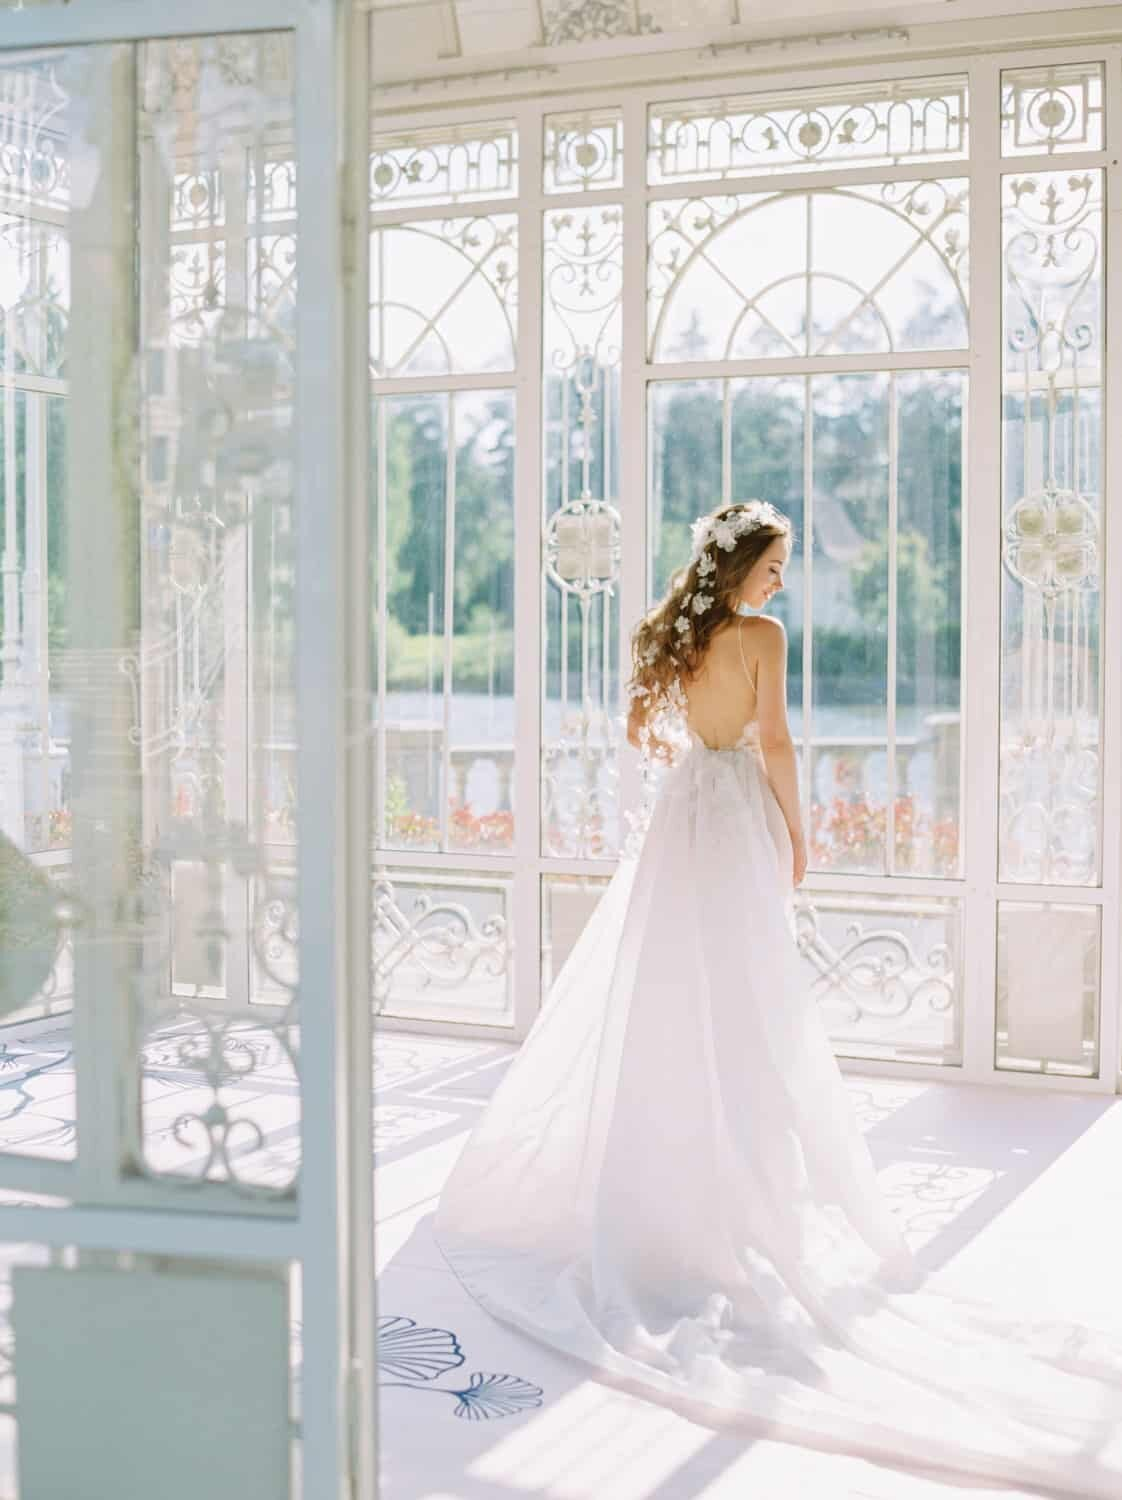 VILLA-ROTONDA-DEAUVILLE-wedding-moscow-by-Julia-Kaptelova-Photography-011